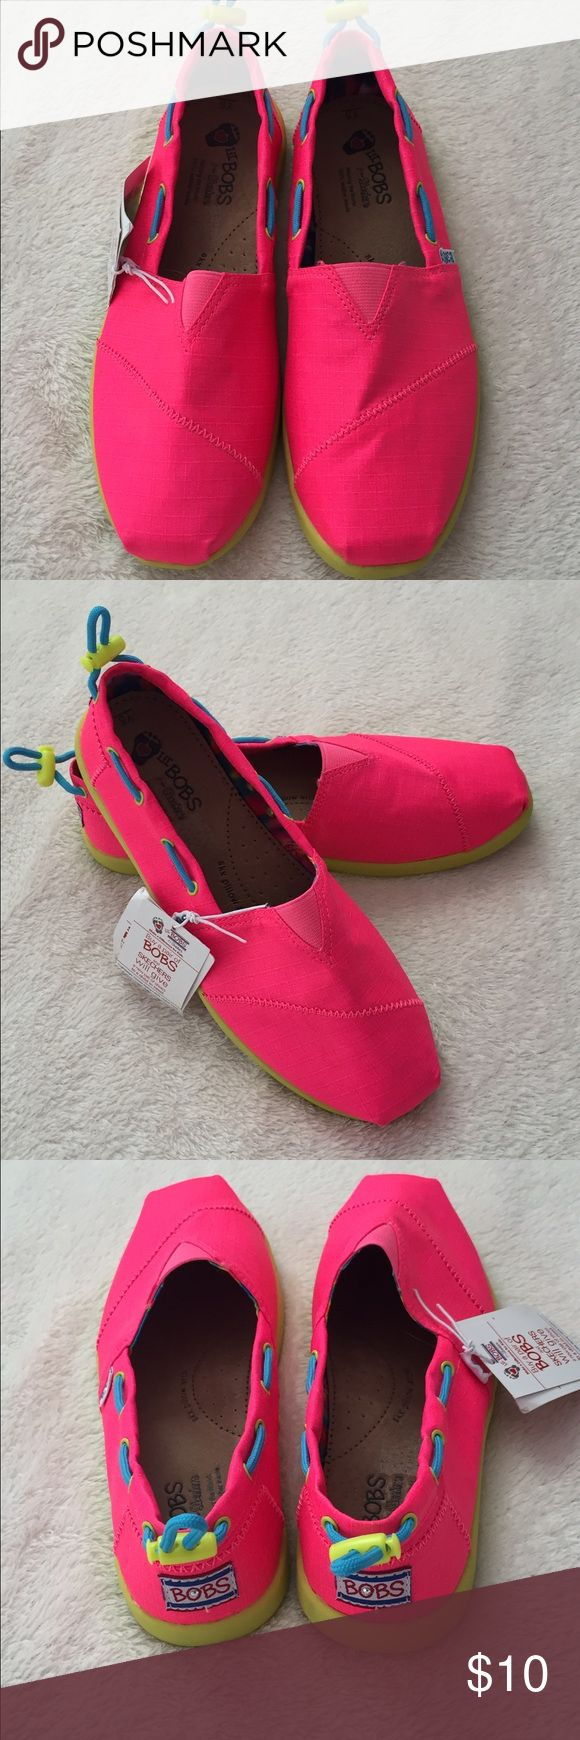 BOBs shoes, NWT!! Super cute neon pink Bobs shoes. Much like TOMS! Brand-new with tags. Size 5 youth. Has bungee adjuster on the back. Bundle 2+ and save 30%!! Please make an offer! BOBS Shoes